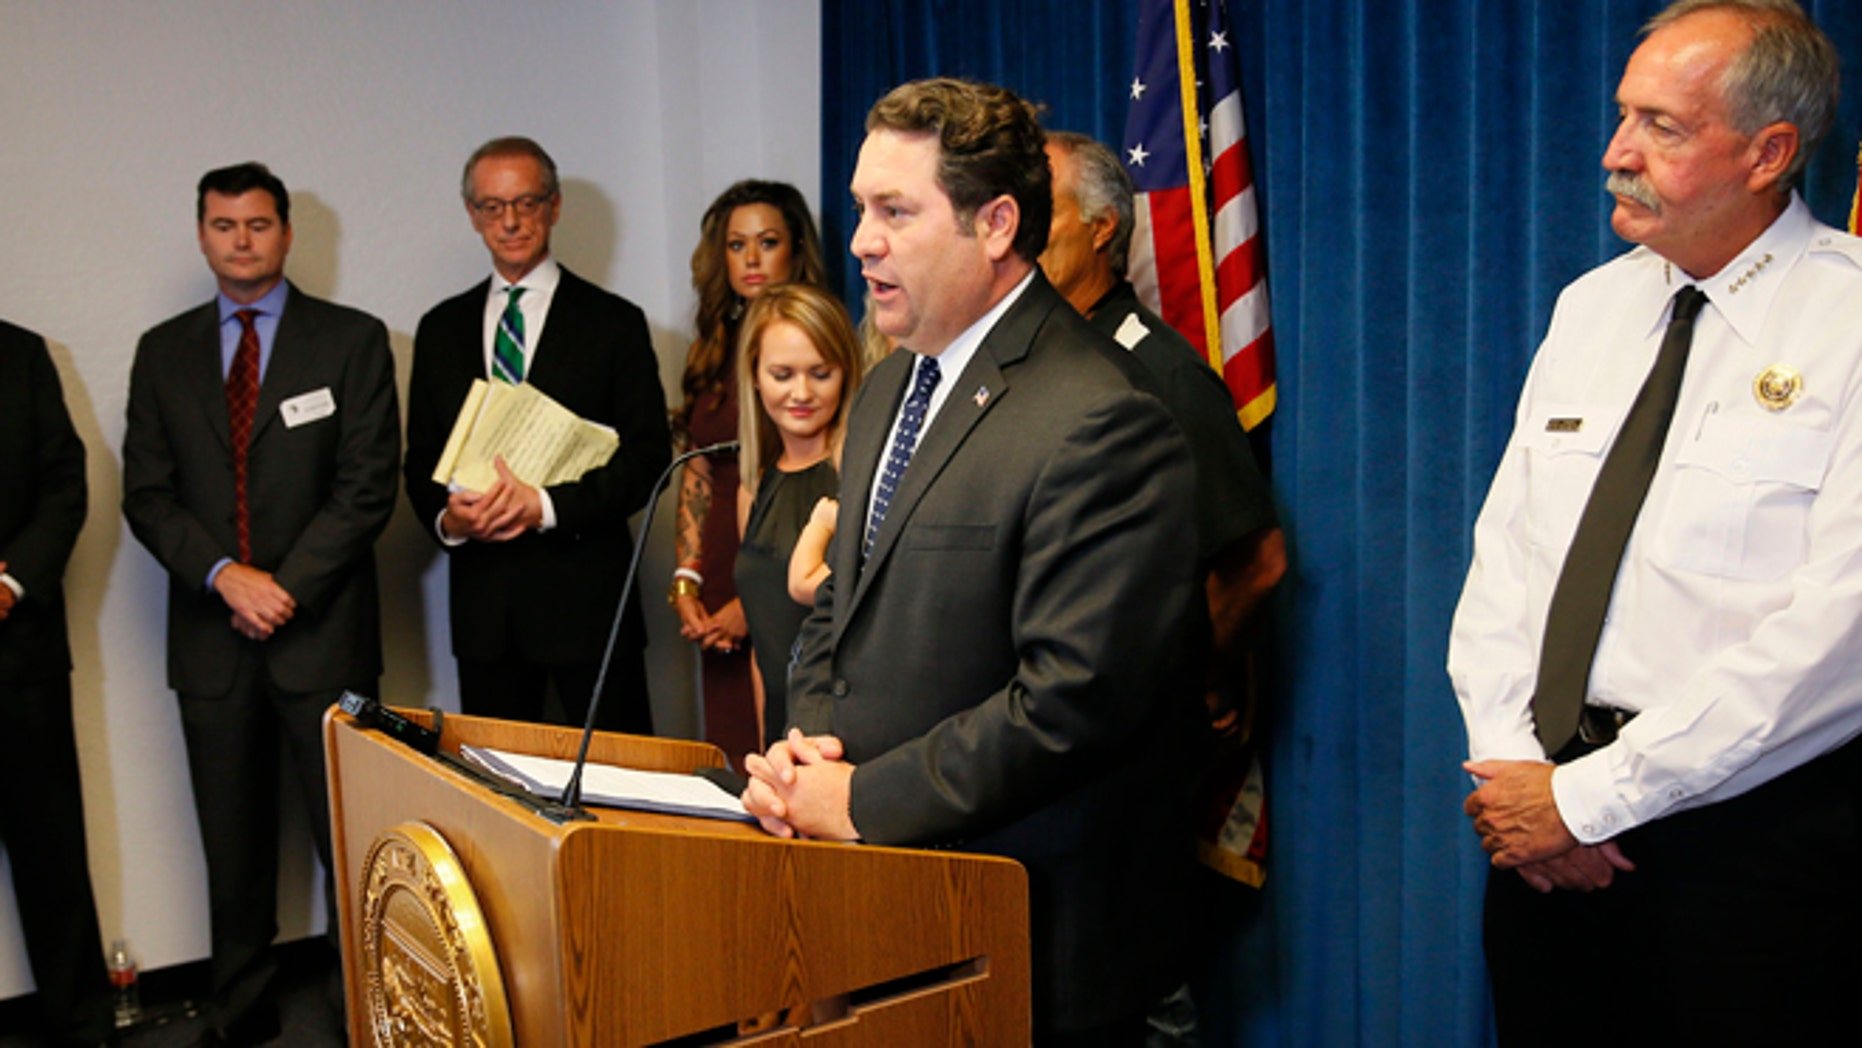 June 29, 2015: Arizona Attorney General Mark Brnovich discusses the status of the Yarnell Hill Fire settlement negotiations at the Arizona Attorney General's office in Phoenix.